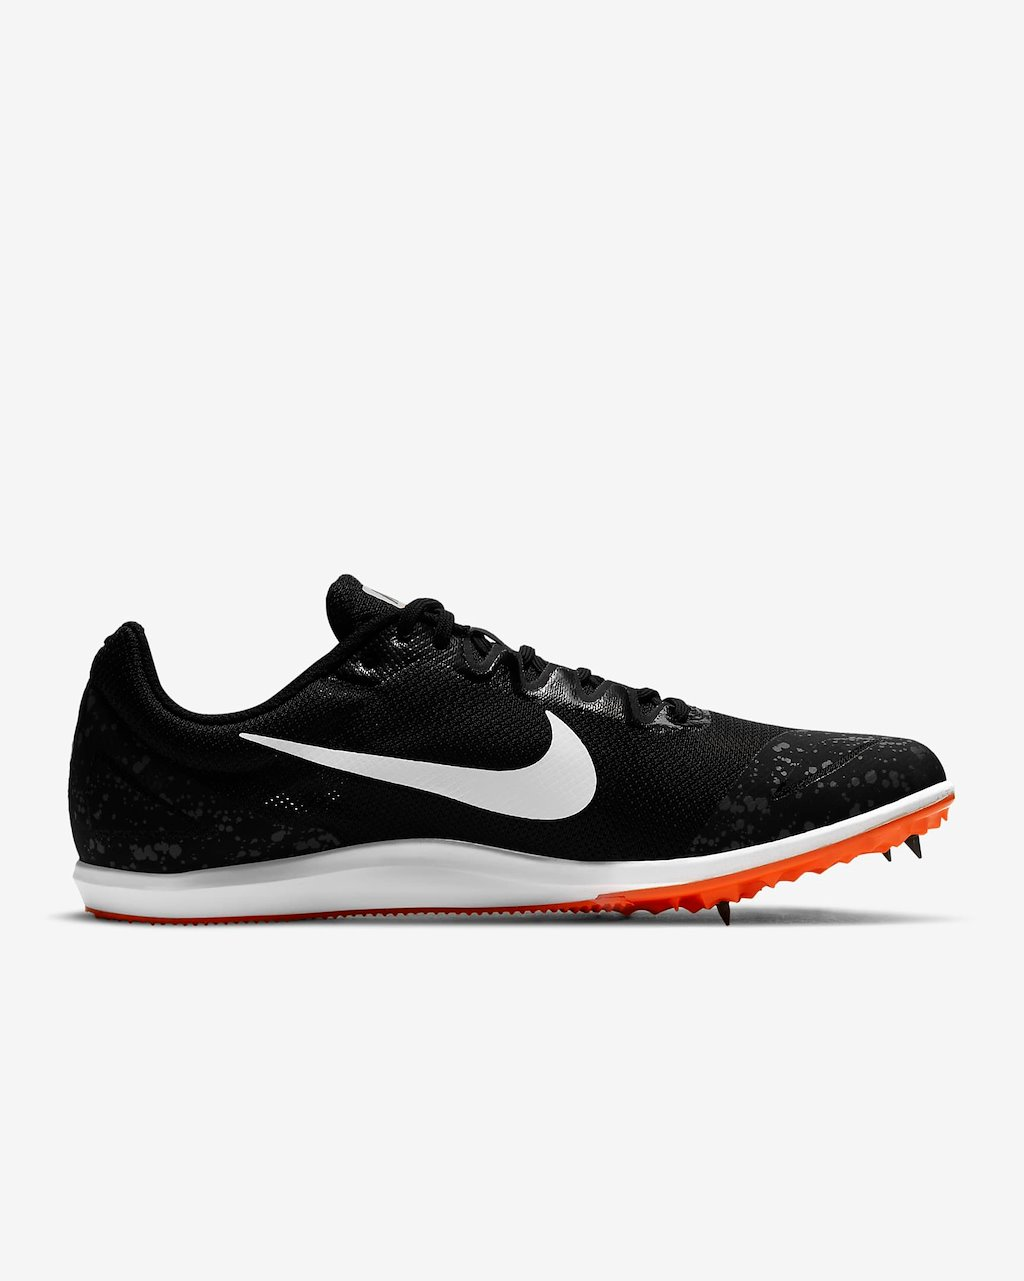 Unisex Nike Zoom Rival D 10 Track S